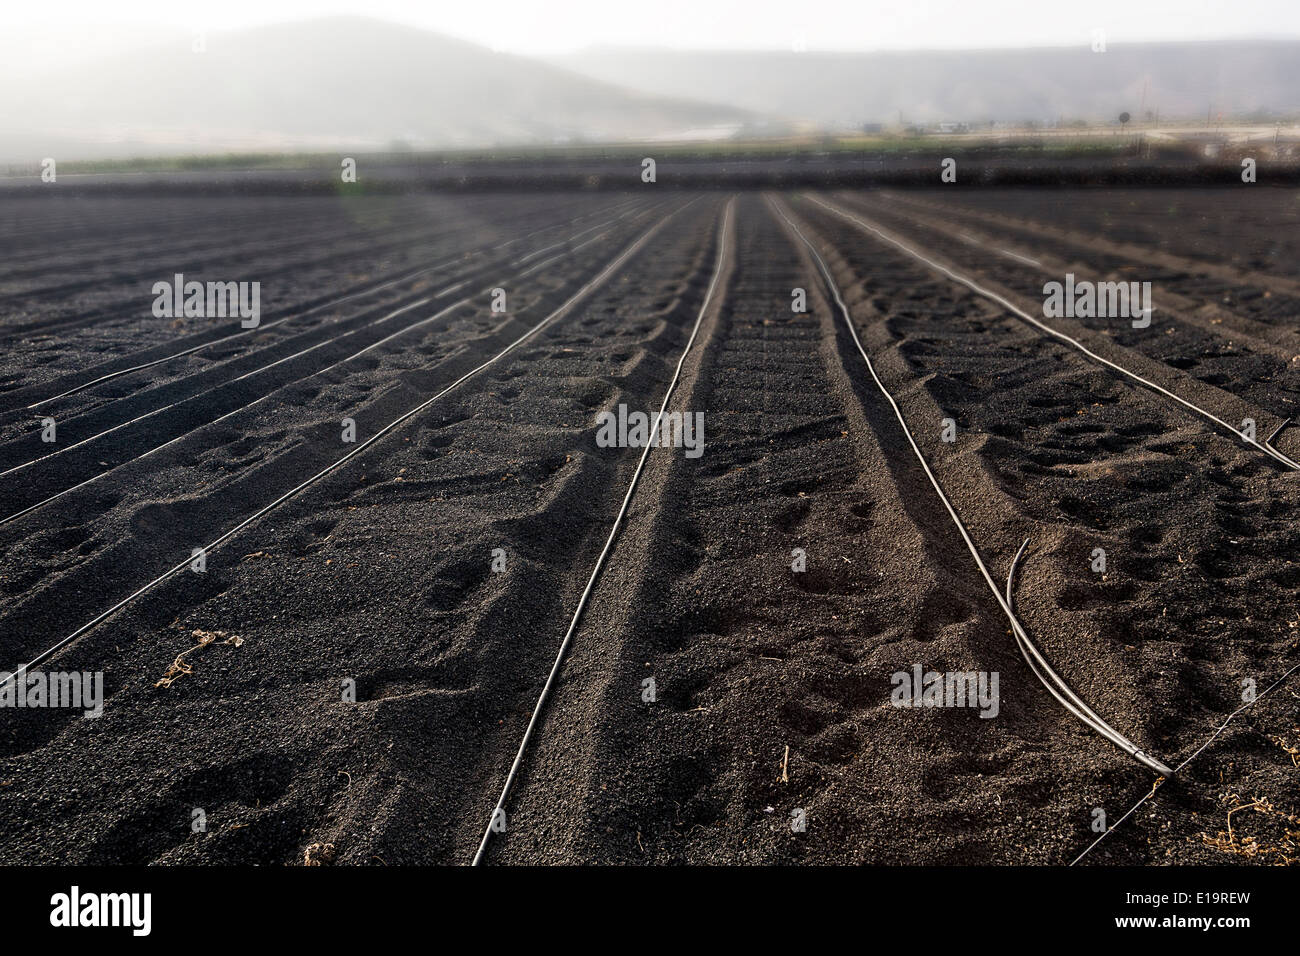 Irrigation pipes laid on bare volcanic soil, Arrieta, Lanzarote, Canary Islands, Spain - Stock Image